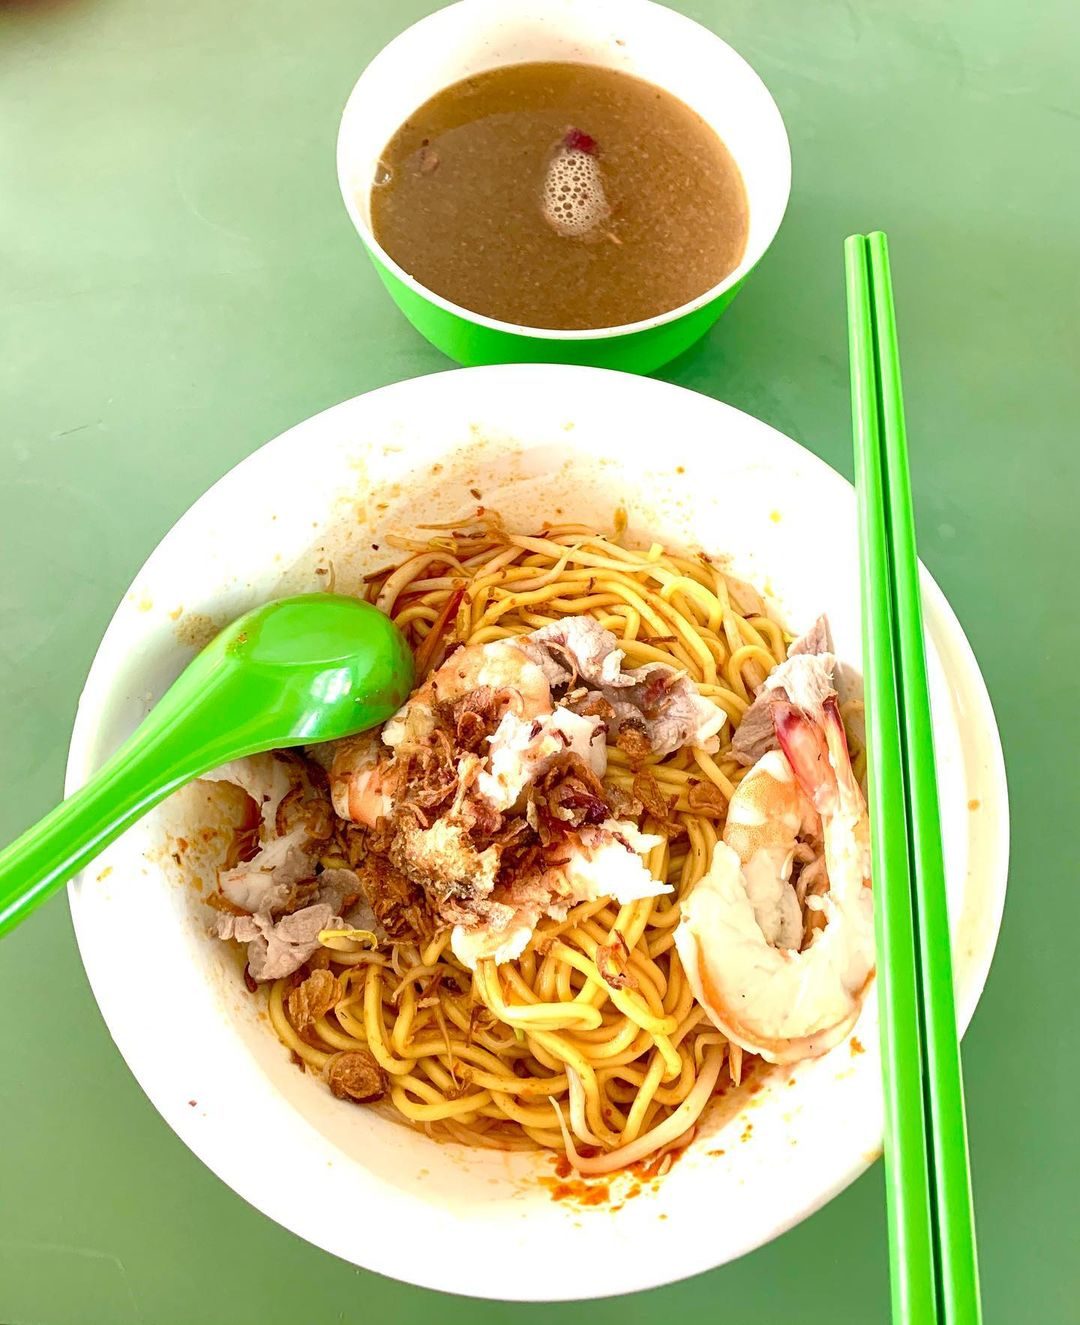 niu ji prawn noodle - hawkers without online delivery in the east